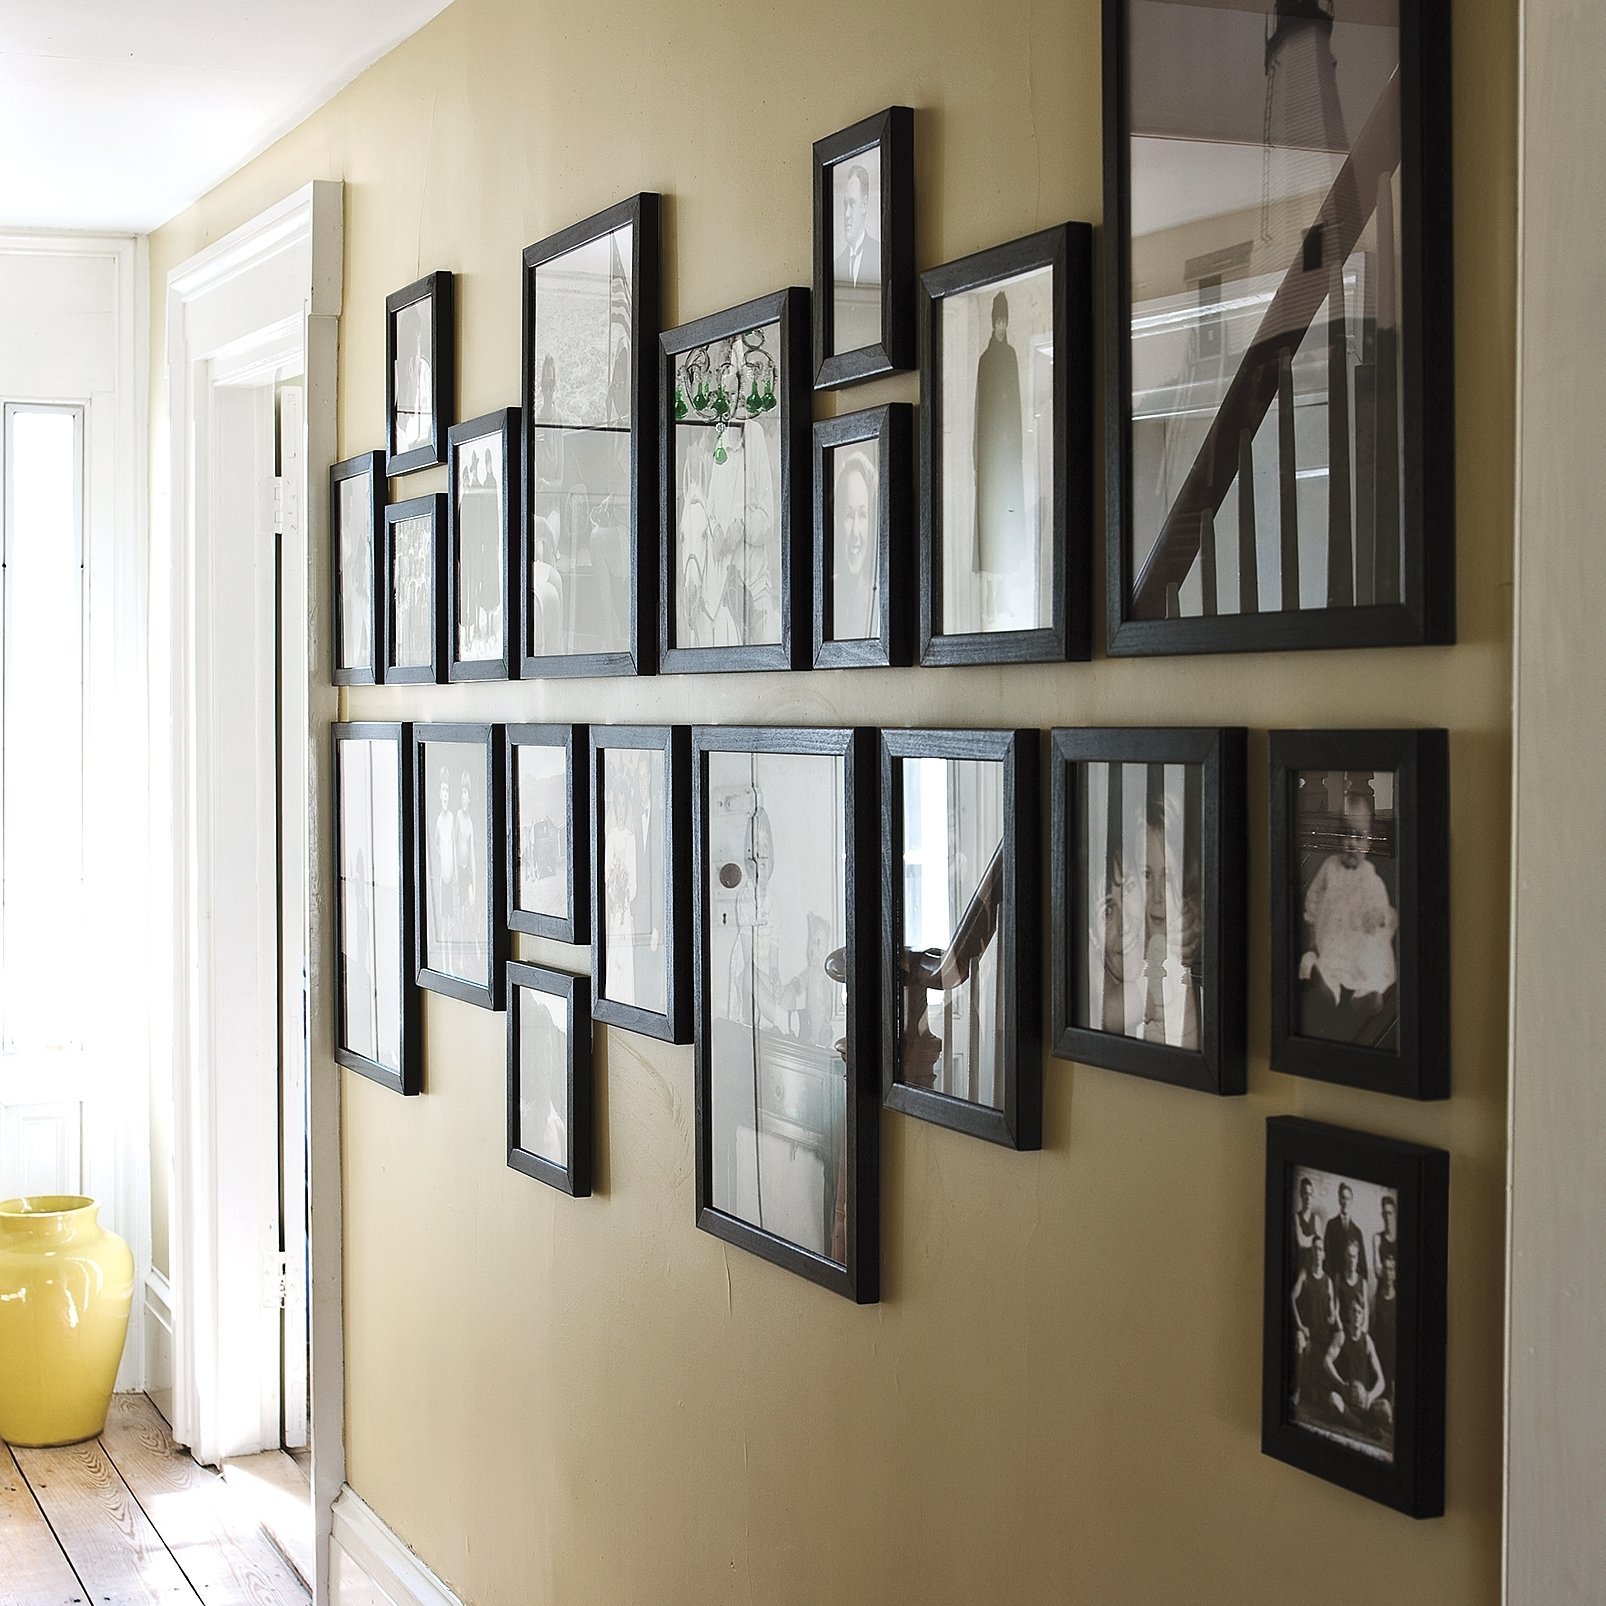 10 Unique Hanging Pictures On Wall Ideas design ideas any different ways to hang pictures cream wall paint 2020